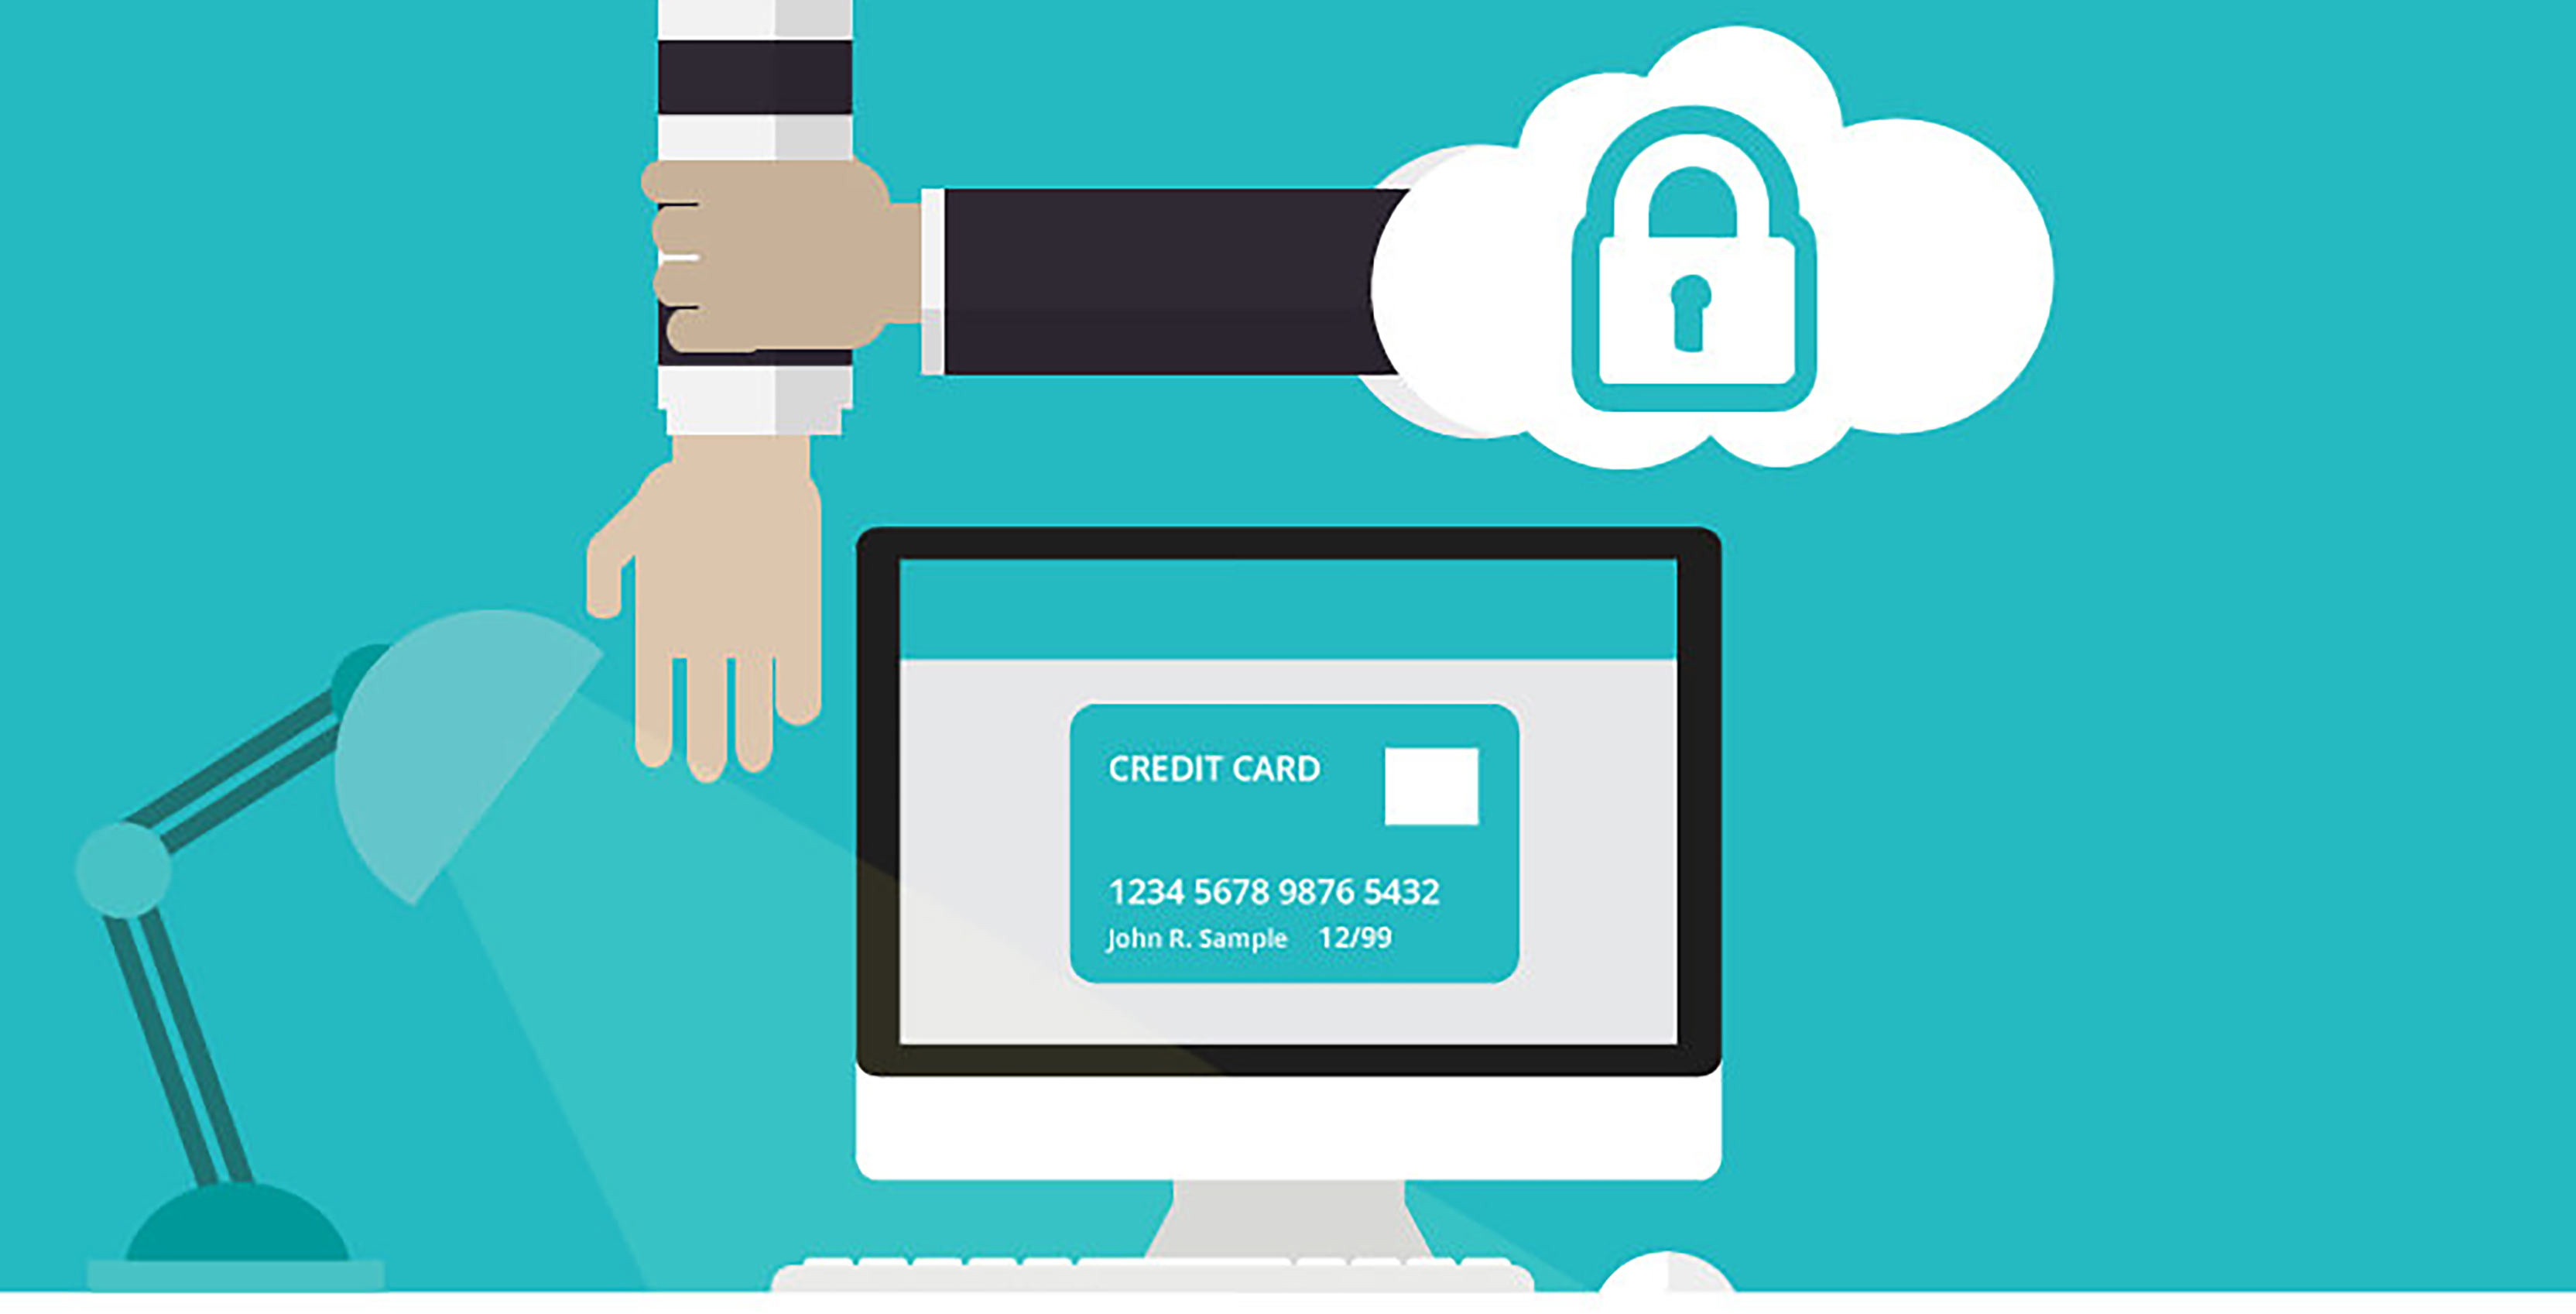 Data security - cyber crime